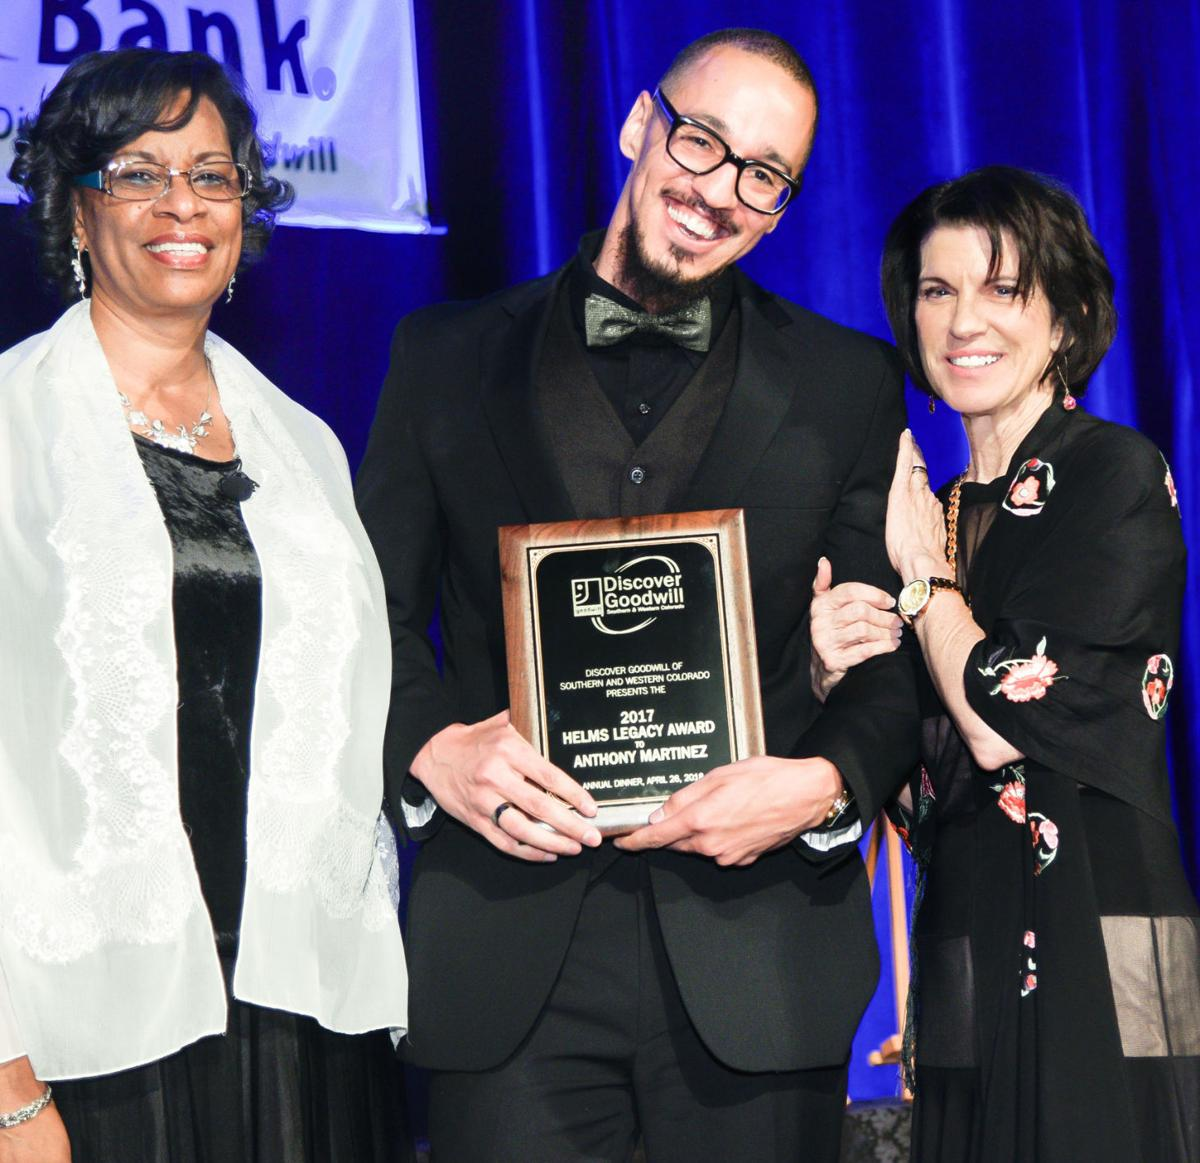 """Helms Legacy Honoree"" Anthony Martinez with Board Chair Deborah Hendrix, left, and President/CEO Karla Grazier. 042618 Discover Goodwill photo"